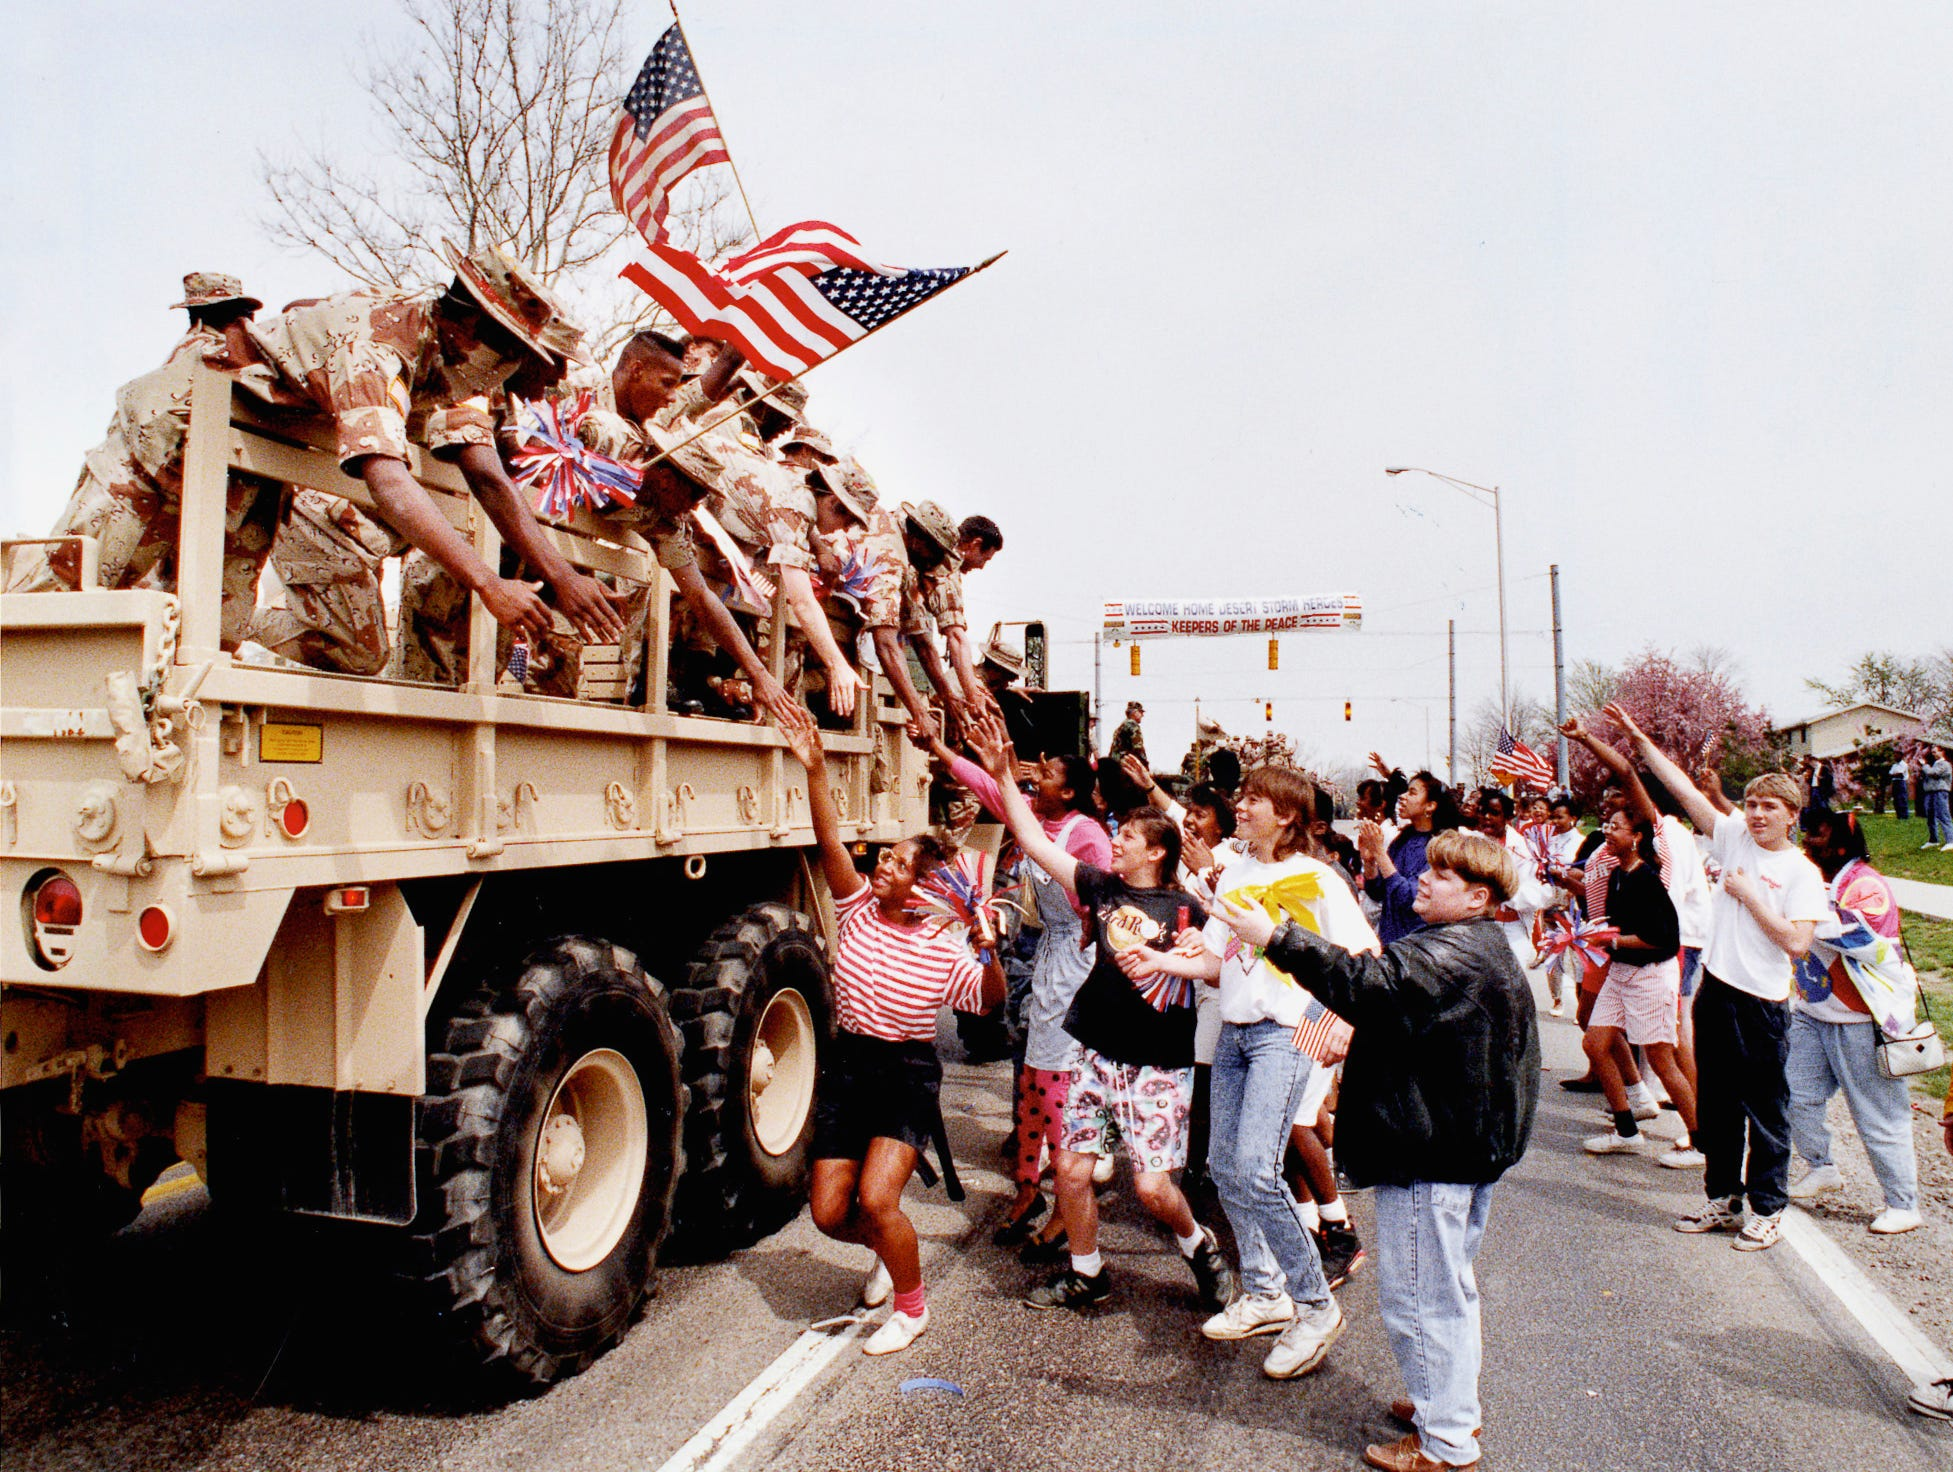 Soldiers returning from the United States' first war in Iraq were met with appreciative cheers from  Lawrence Township students lining the road along East 56th Street. An estimated 6,000 people welcomed 230 Indiana-based Army reservists home from Operation Desert Storm on April 18, 1991 after the fighting ended.